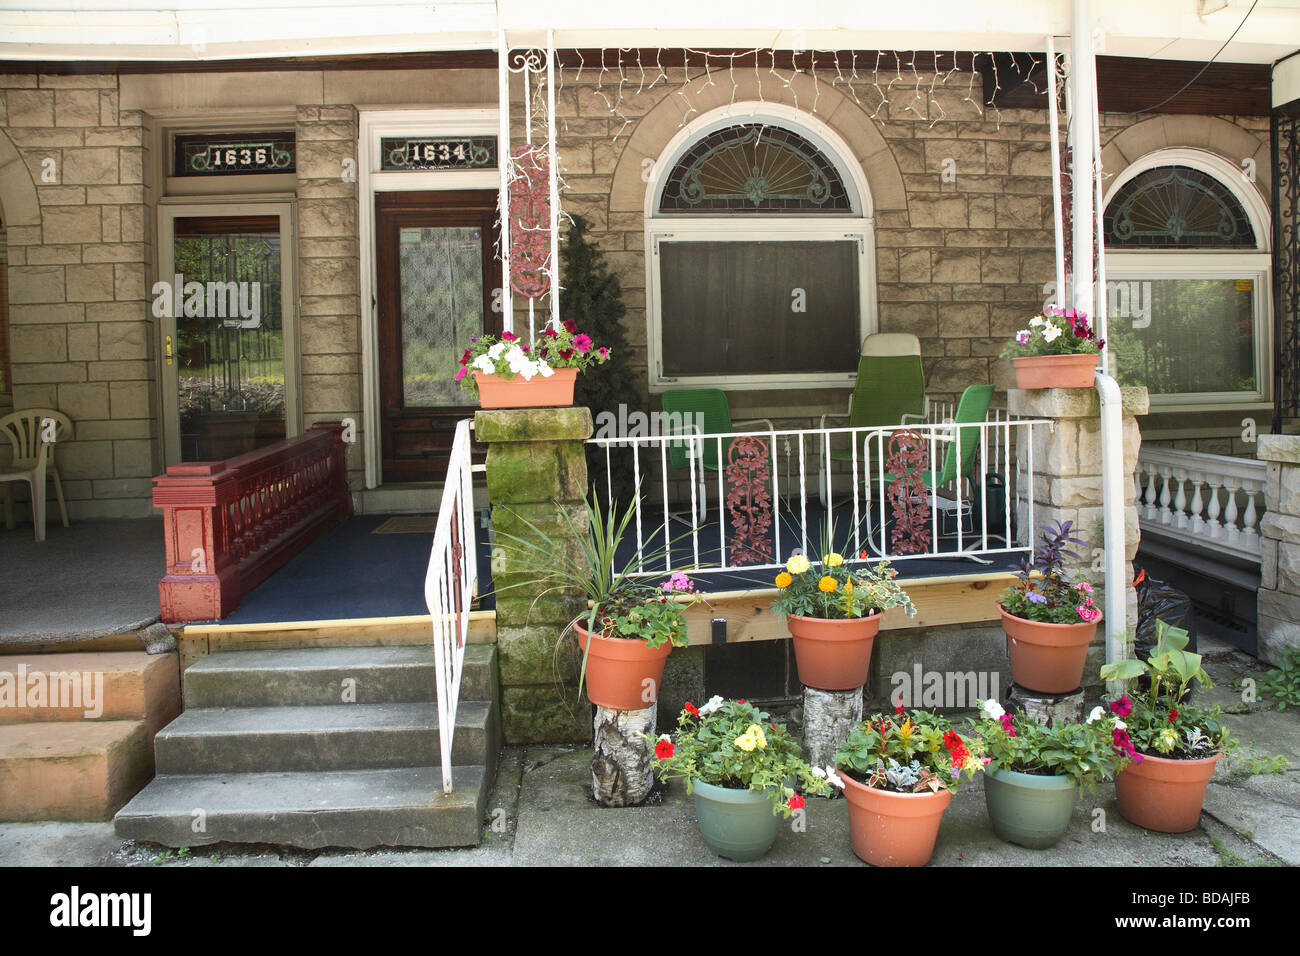 Front Porch And Entrance To Queen Anne Style Terrace Or Row House Stock  Photo: 25434959   Alamy